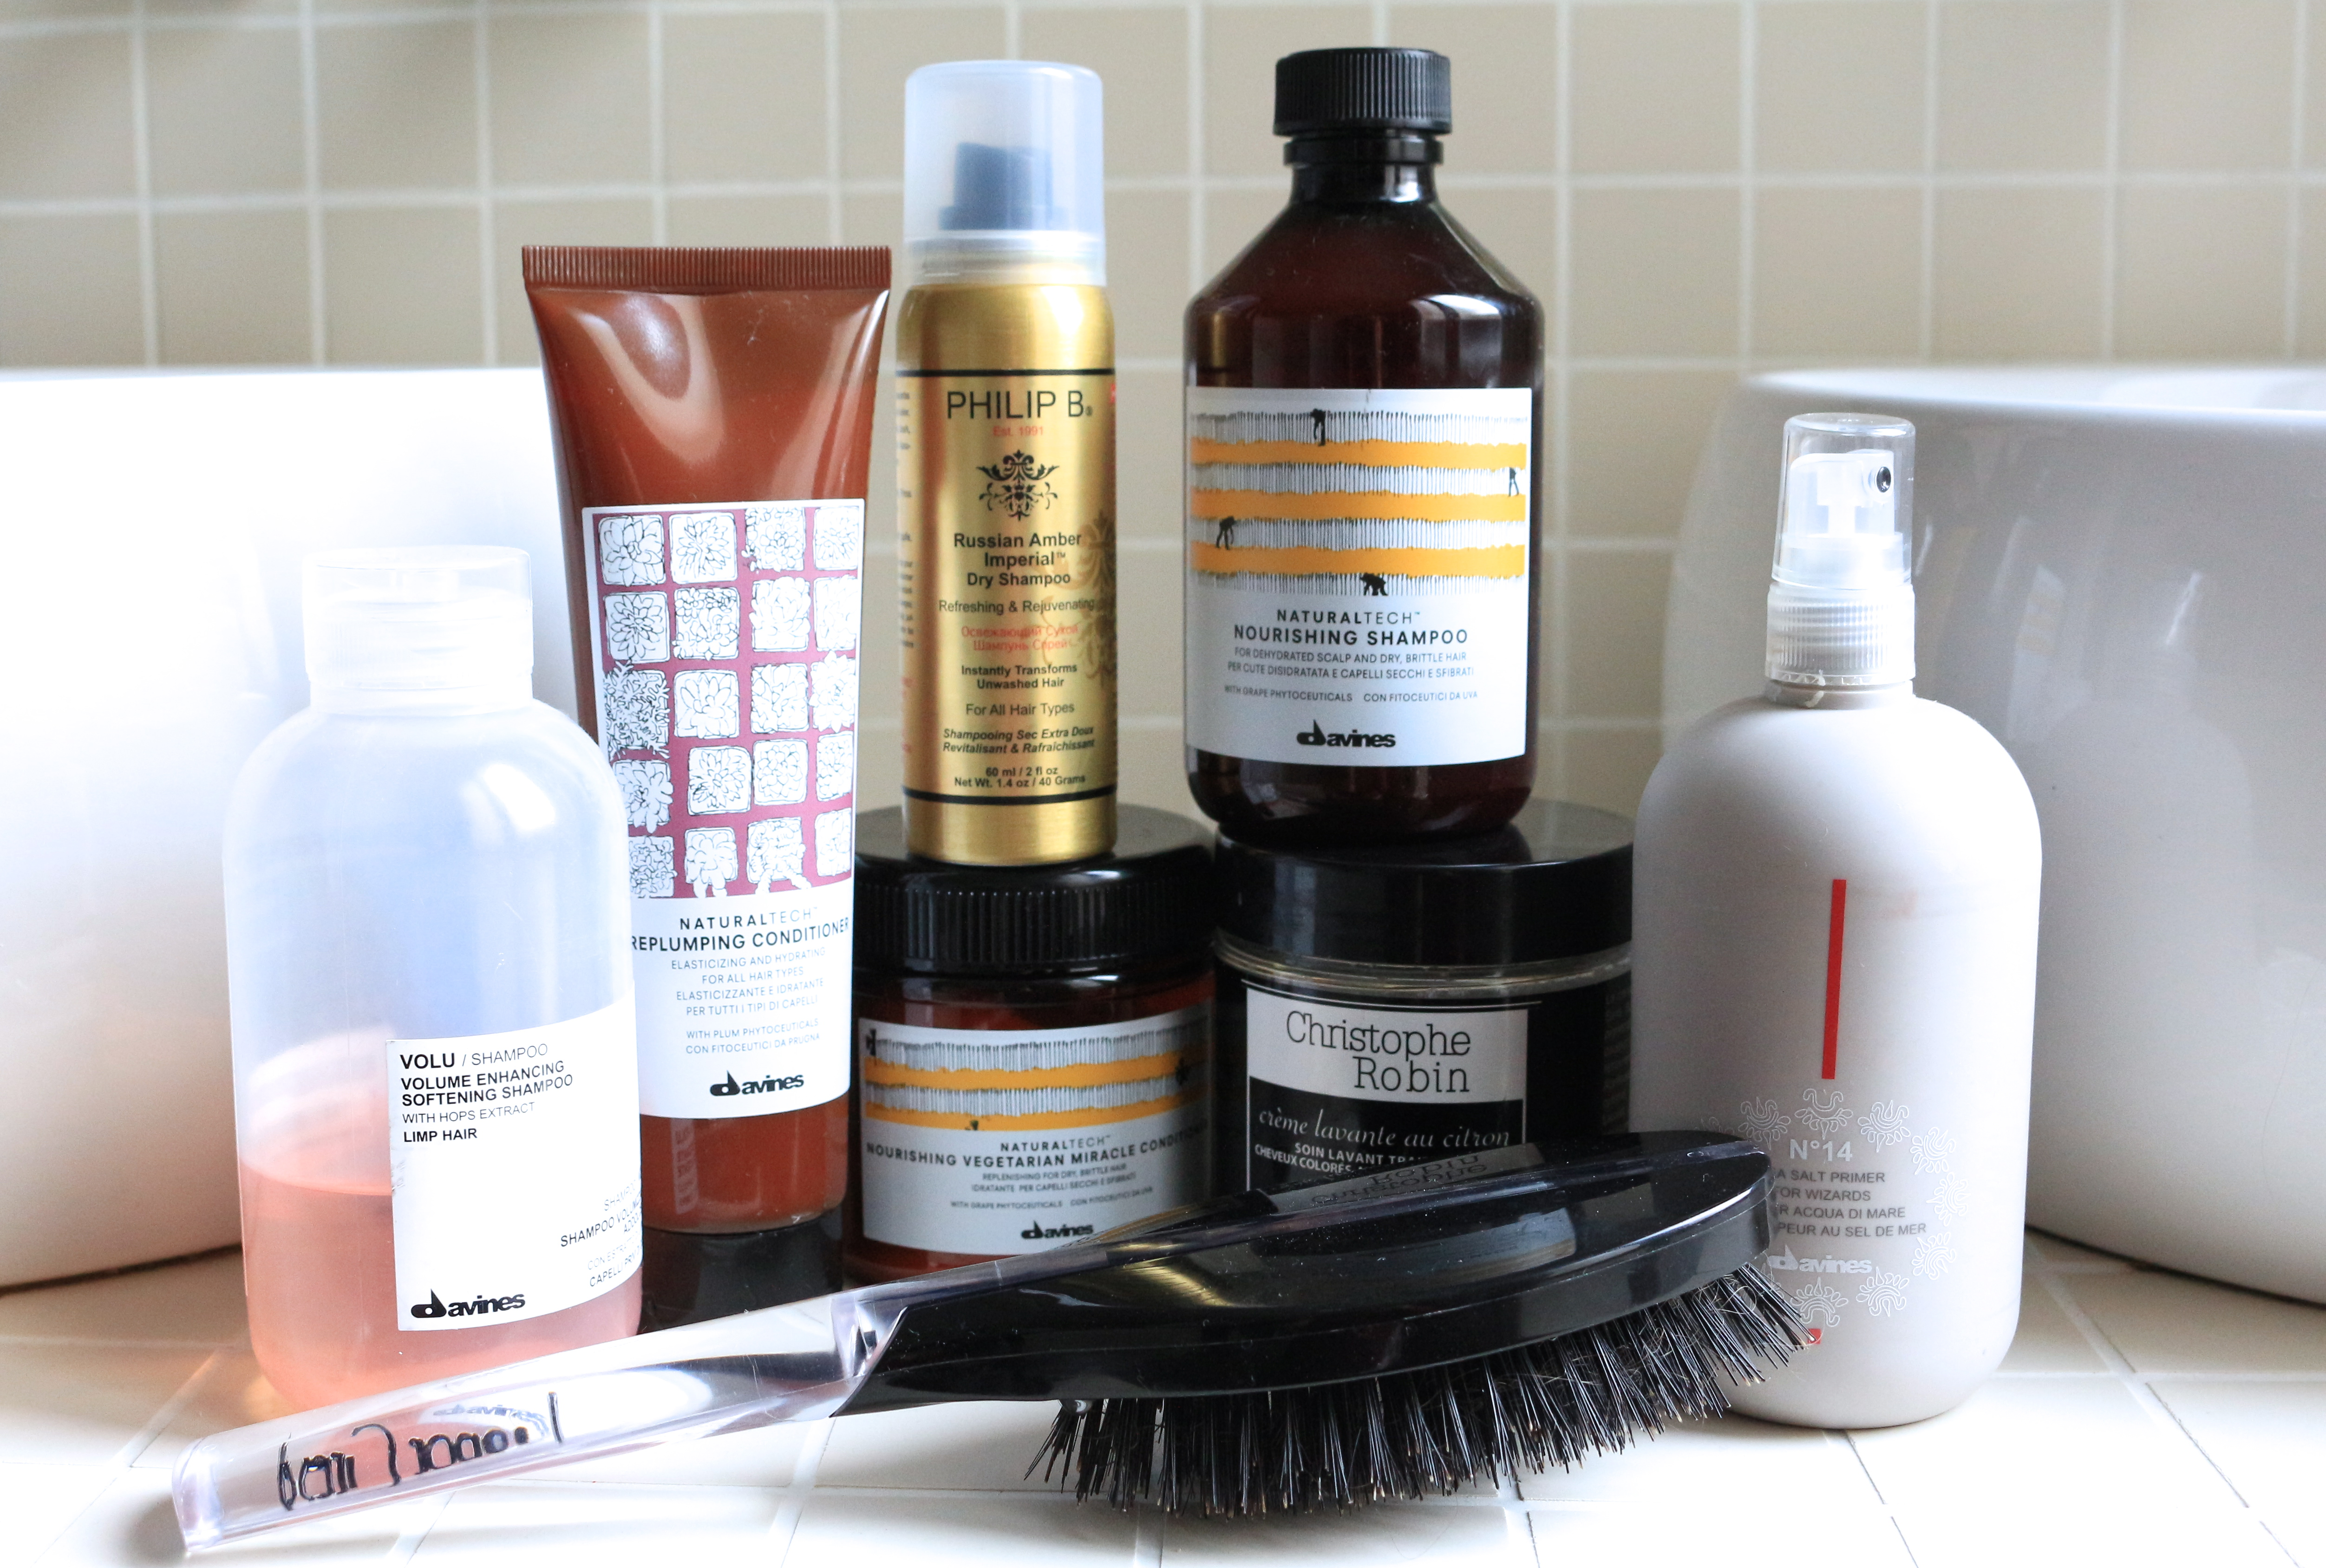 Soin des cheveux : Davines, Christophe Robin, Philip B. / Hair care